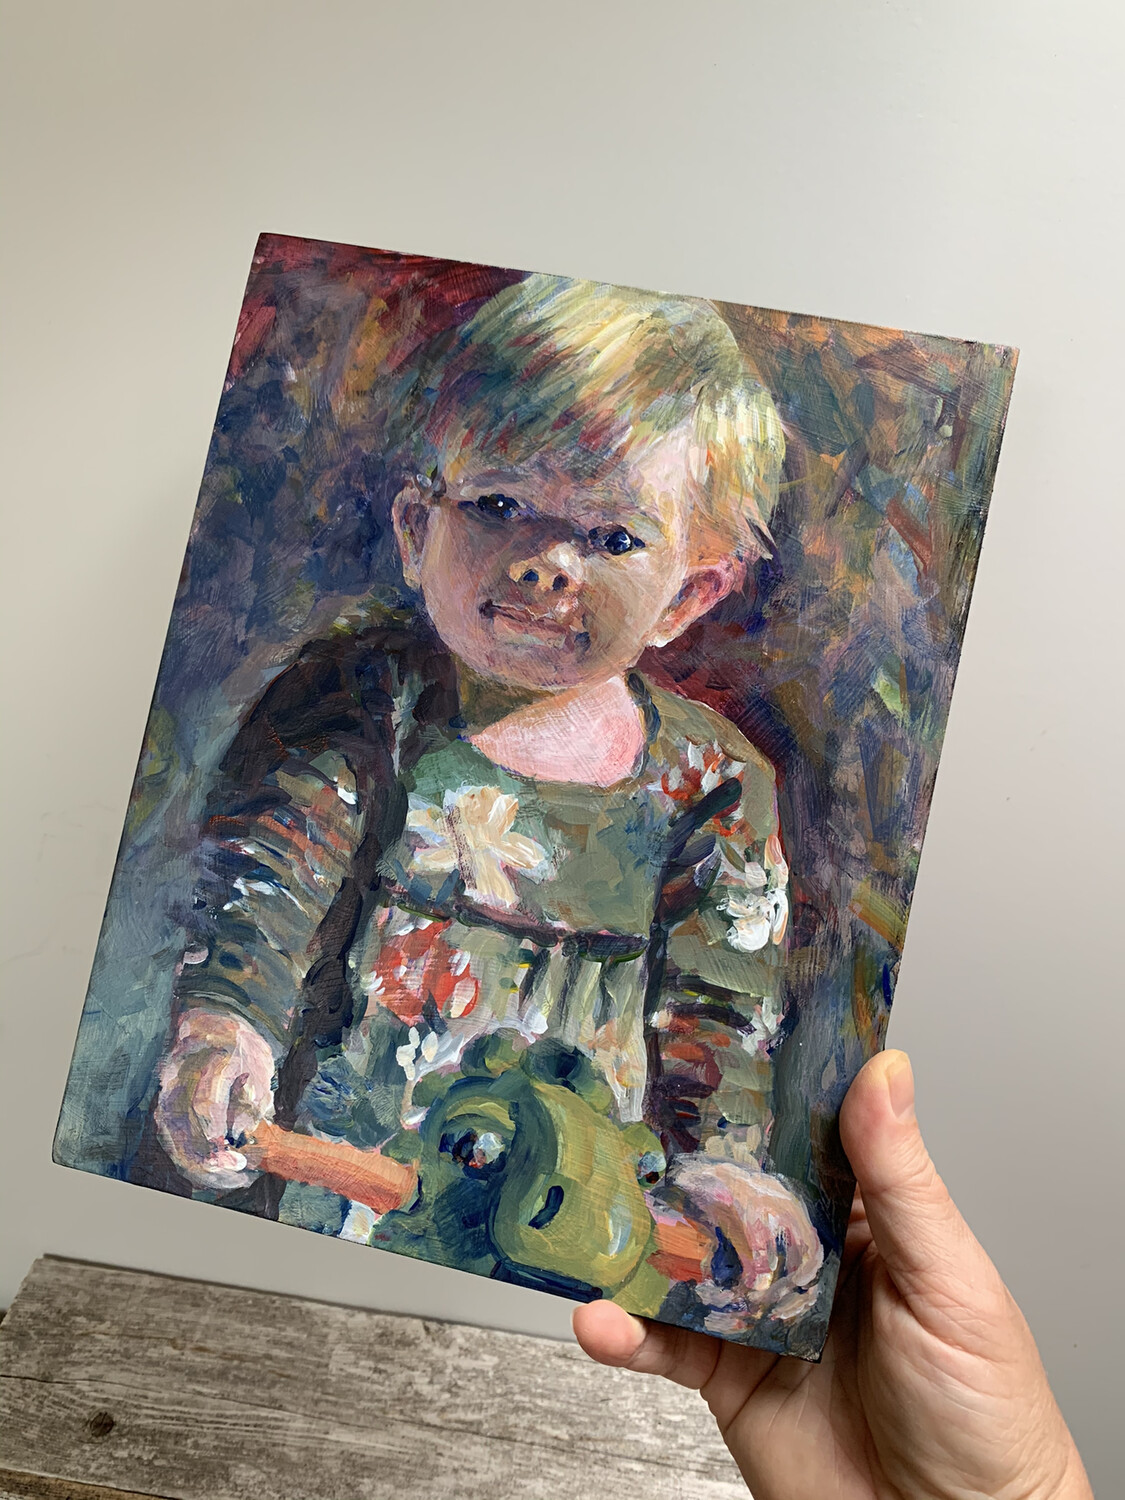 Original Custom Child's Portrait - 8x10 inch Acrylic Painting - Made To Order